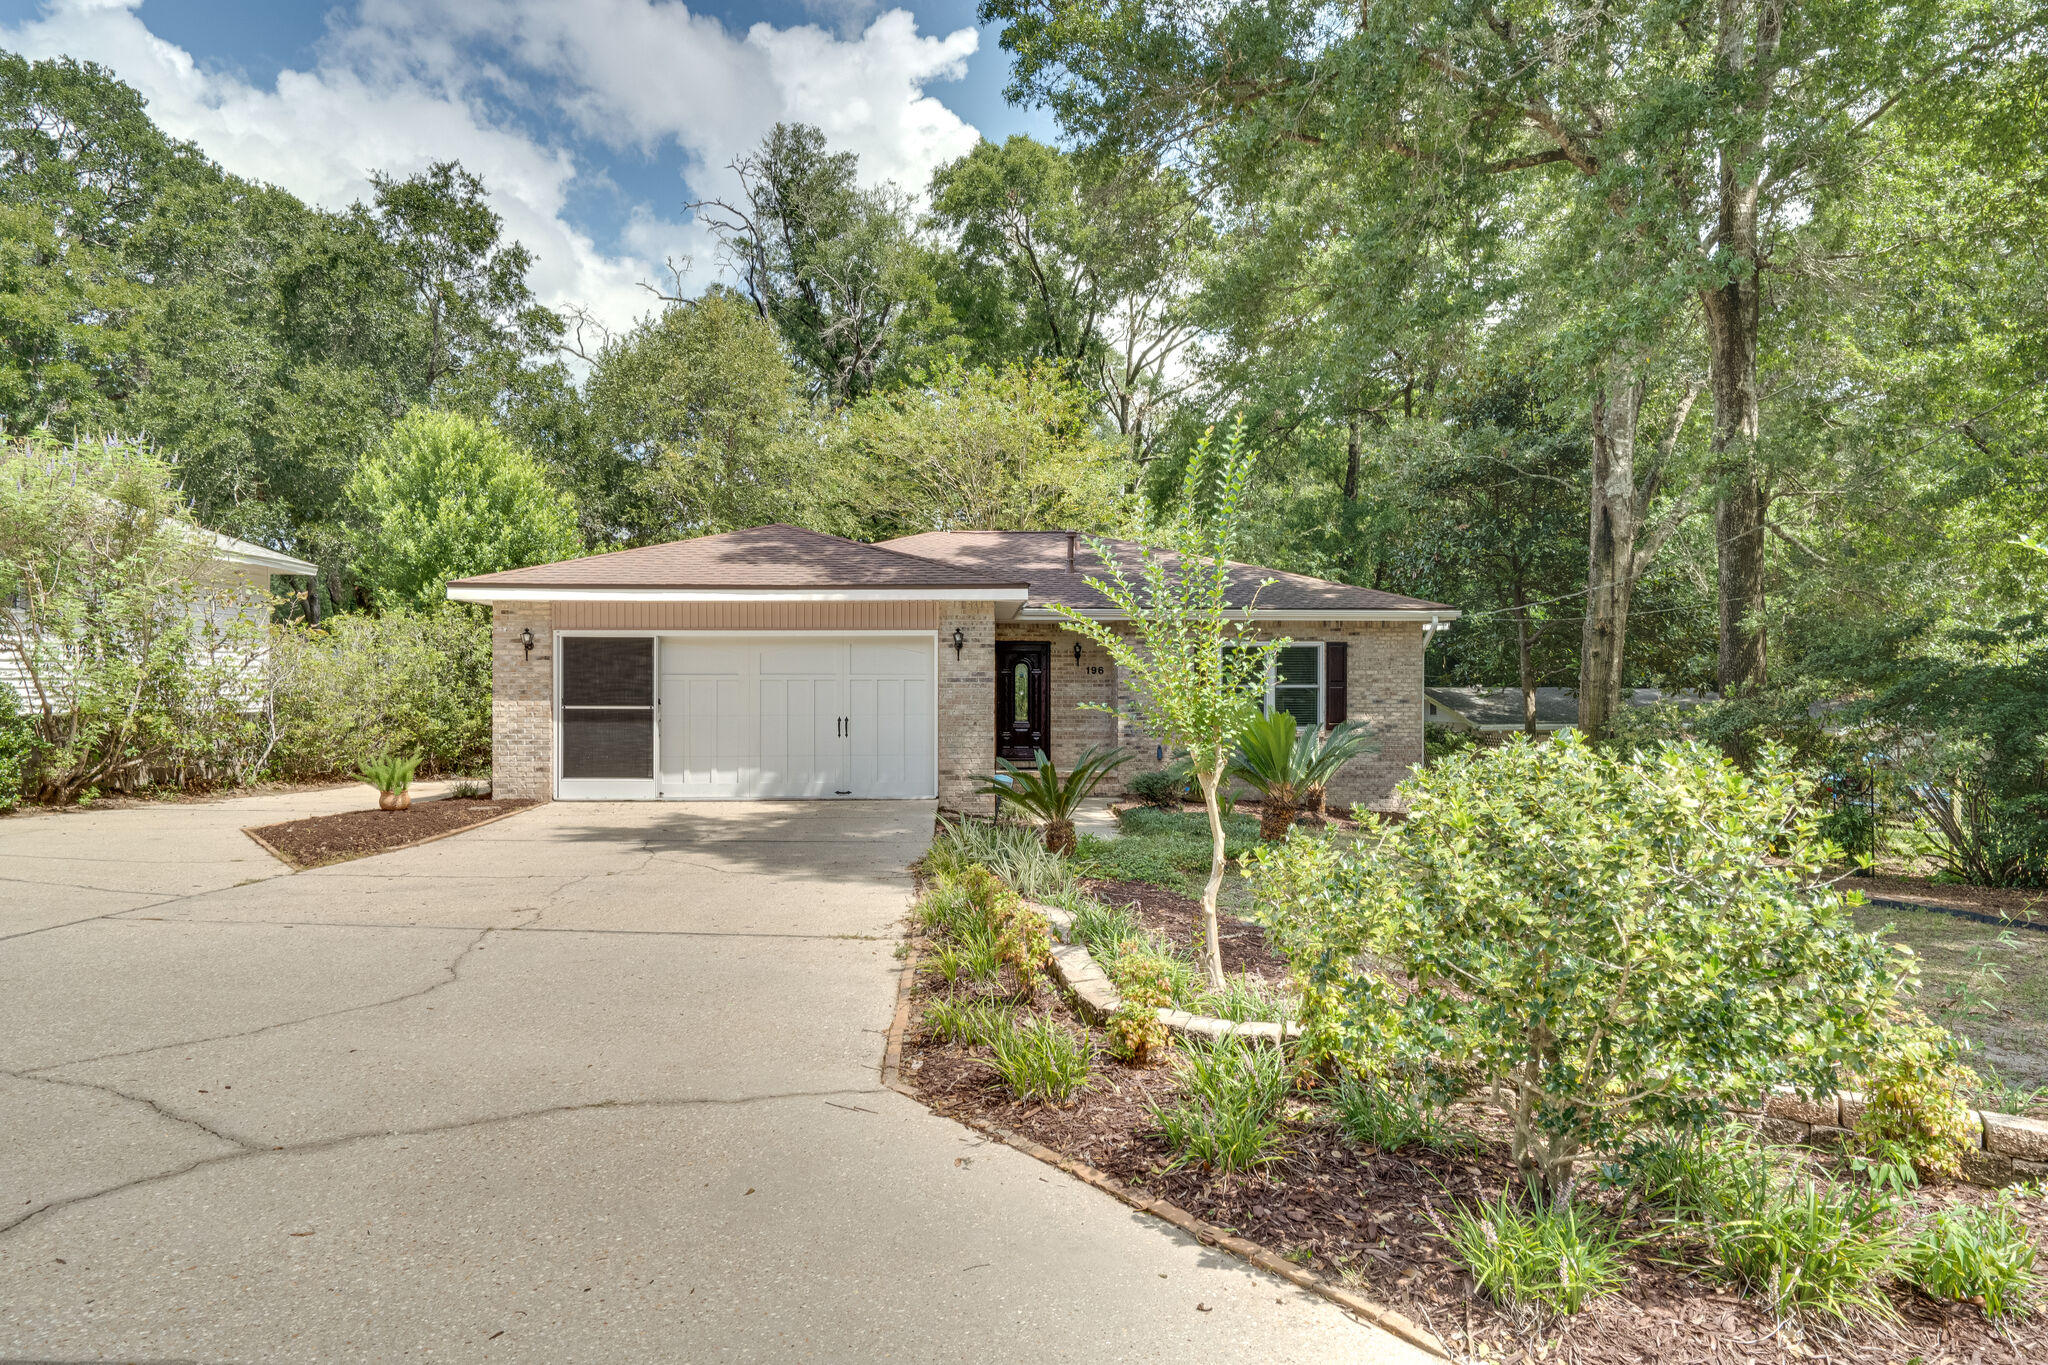 Photo of home for sale at 196 Chicago, Valparaiso FL